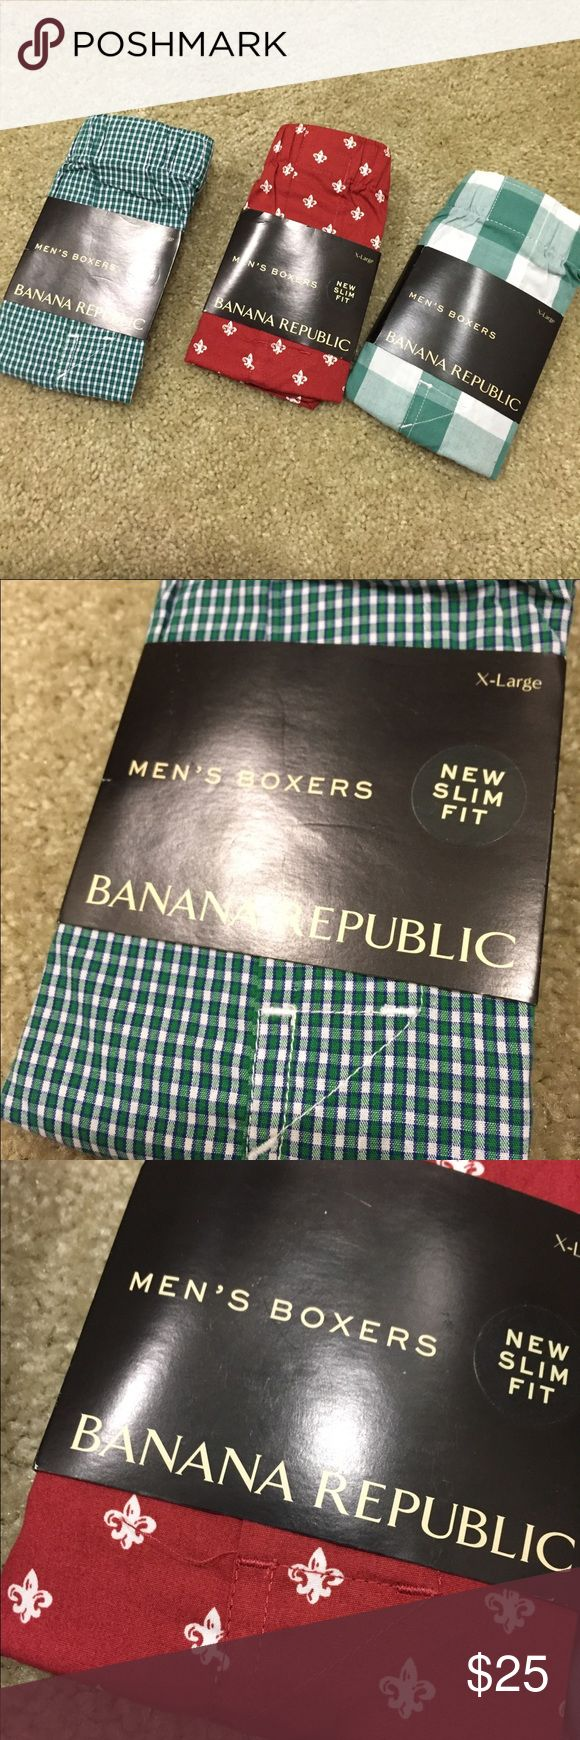 Men boxers 3 pairs Brand new. Bought for husband ended up being to big. Open to offers Banana Republic Underwear & Socks Boxers